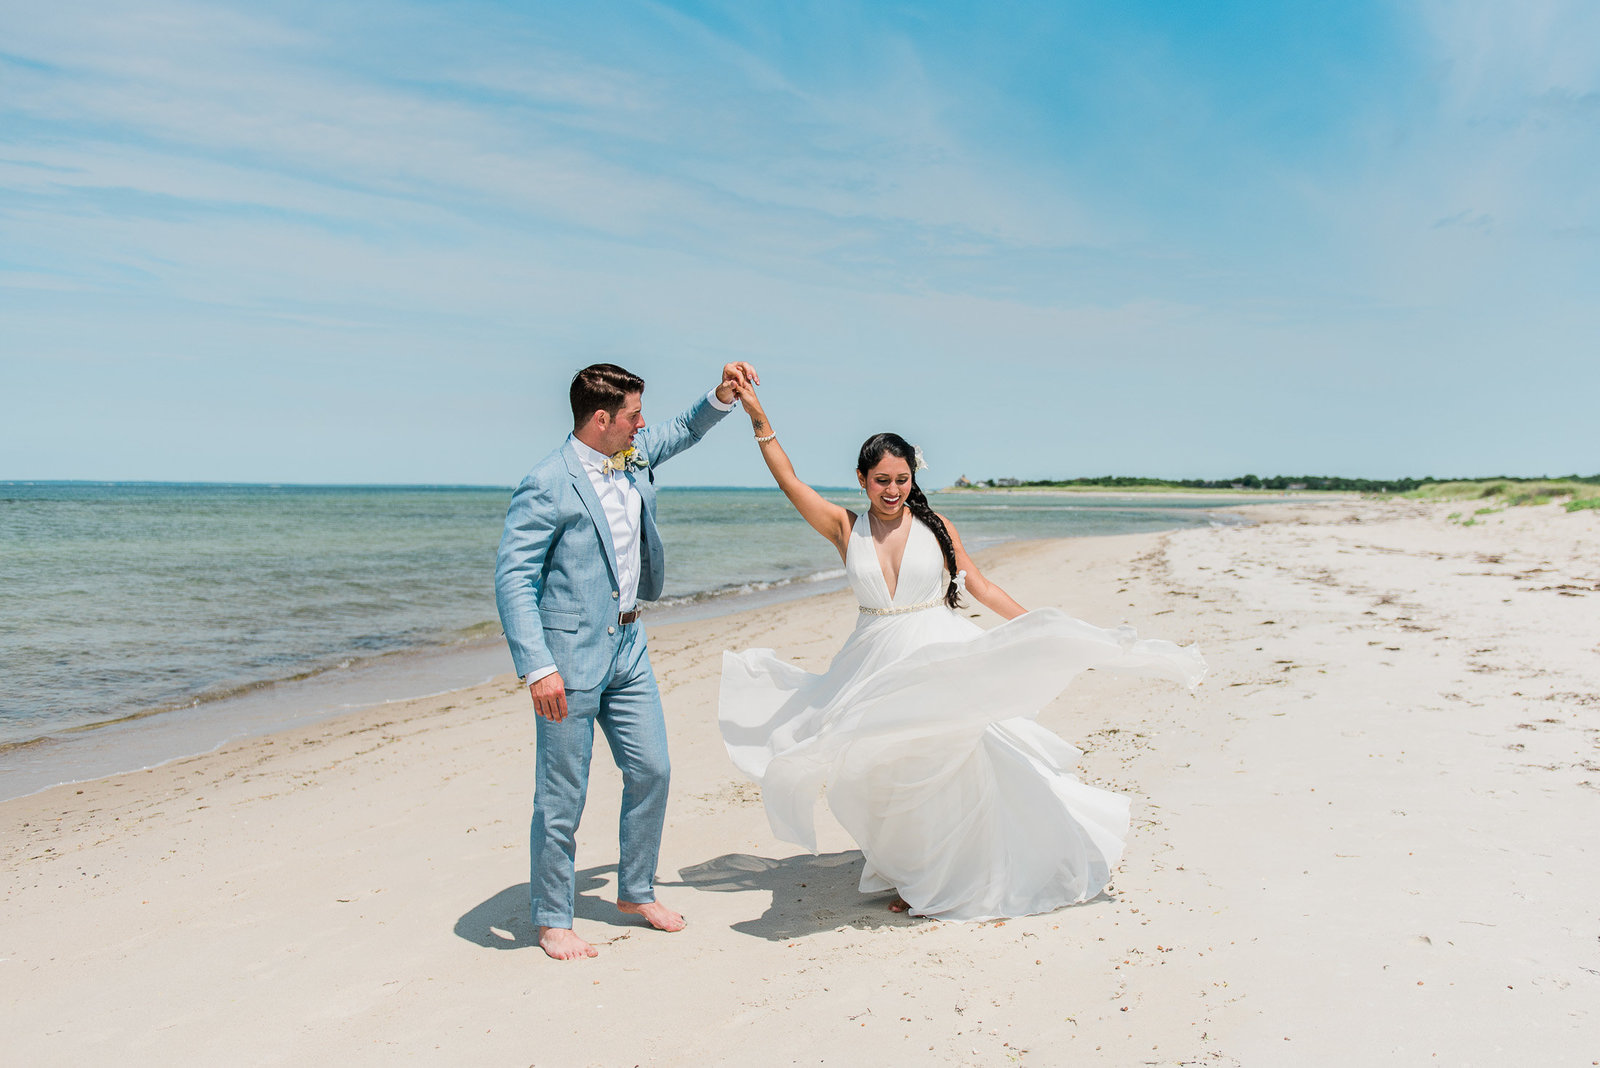 A bride and groom dancing on Falmouth beach for their intimate Cape Cod wedding ceremony